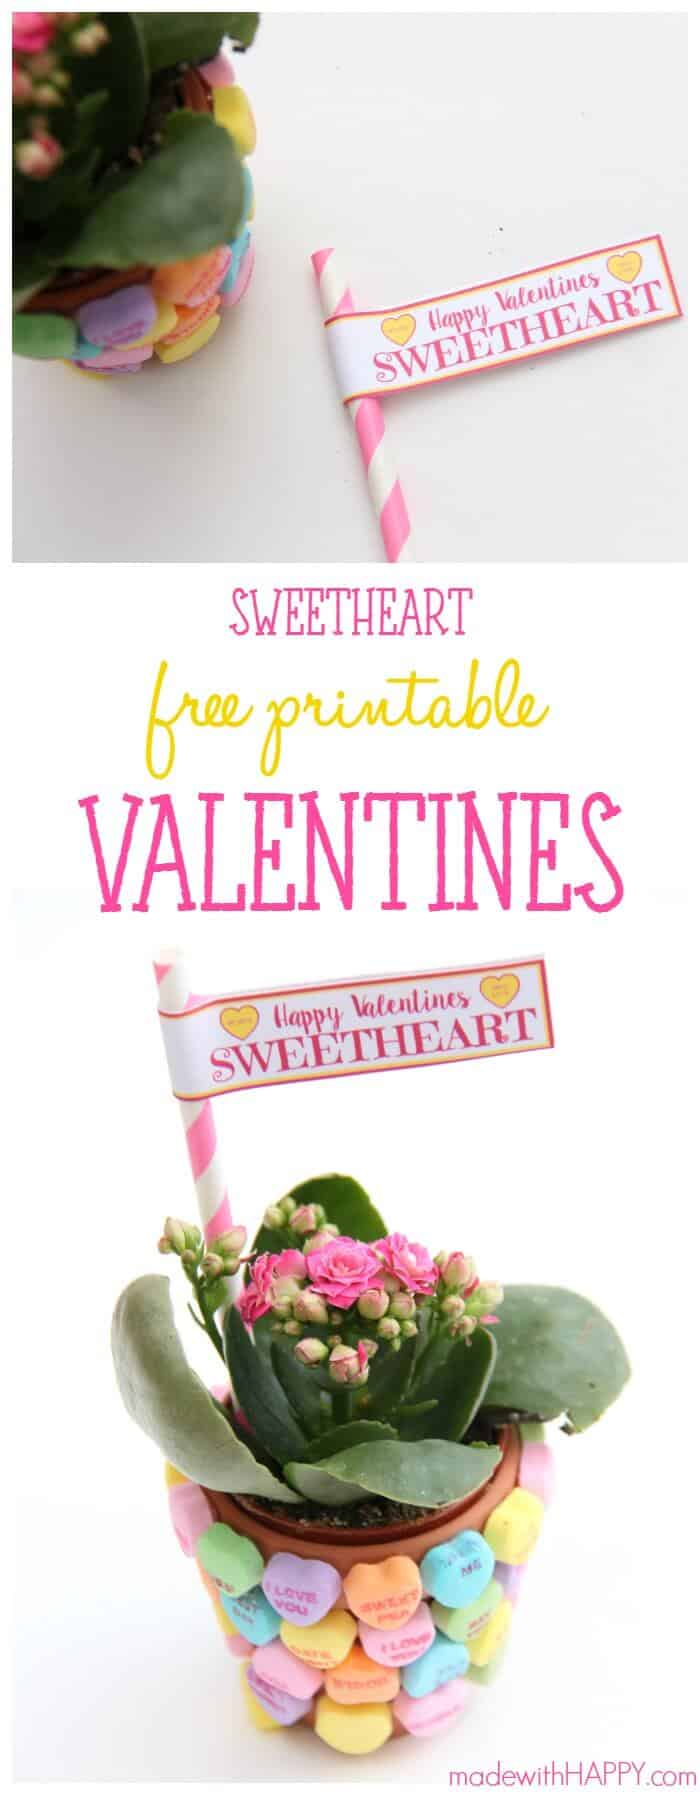 Sweetheart Candies Valentines | Heart Candy Valentines | Free Printable Valentines | Non-Candy Valentines Gifts | www.madewithHAPPY.com